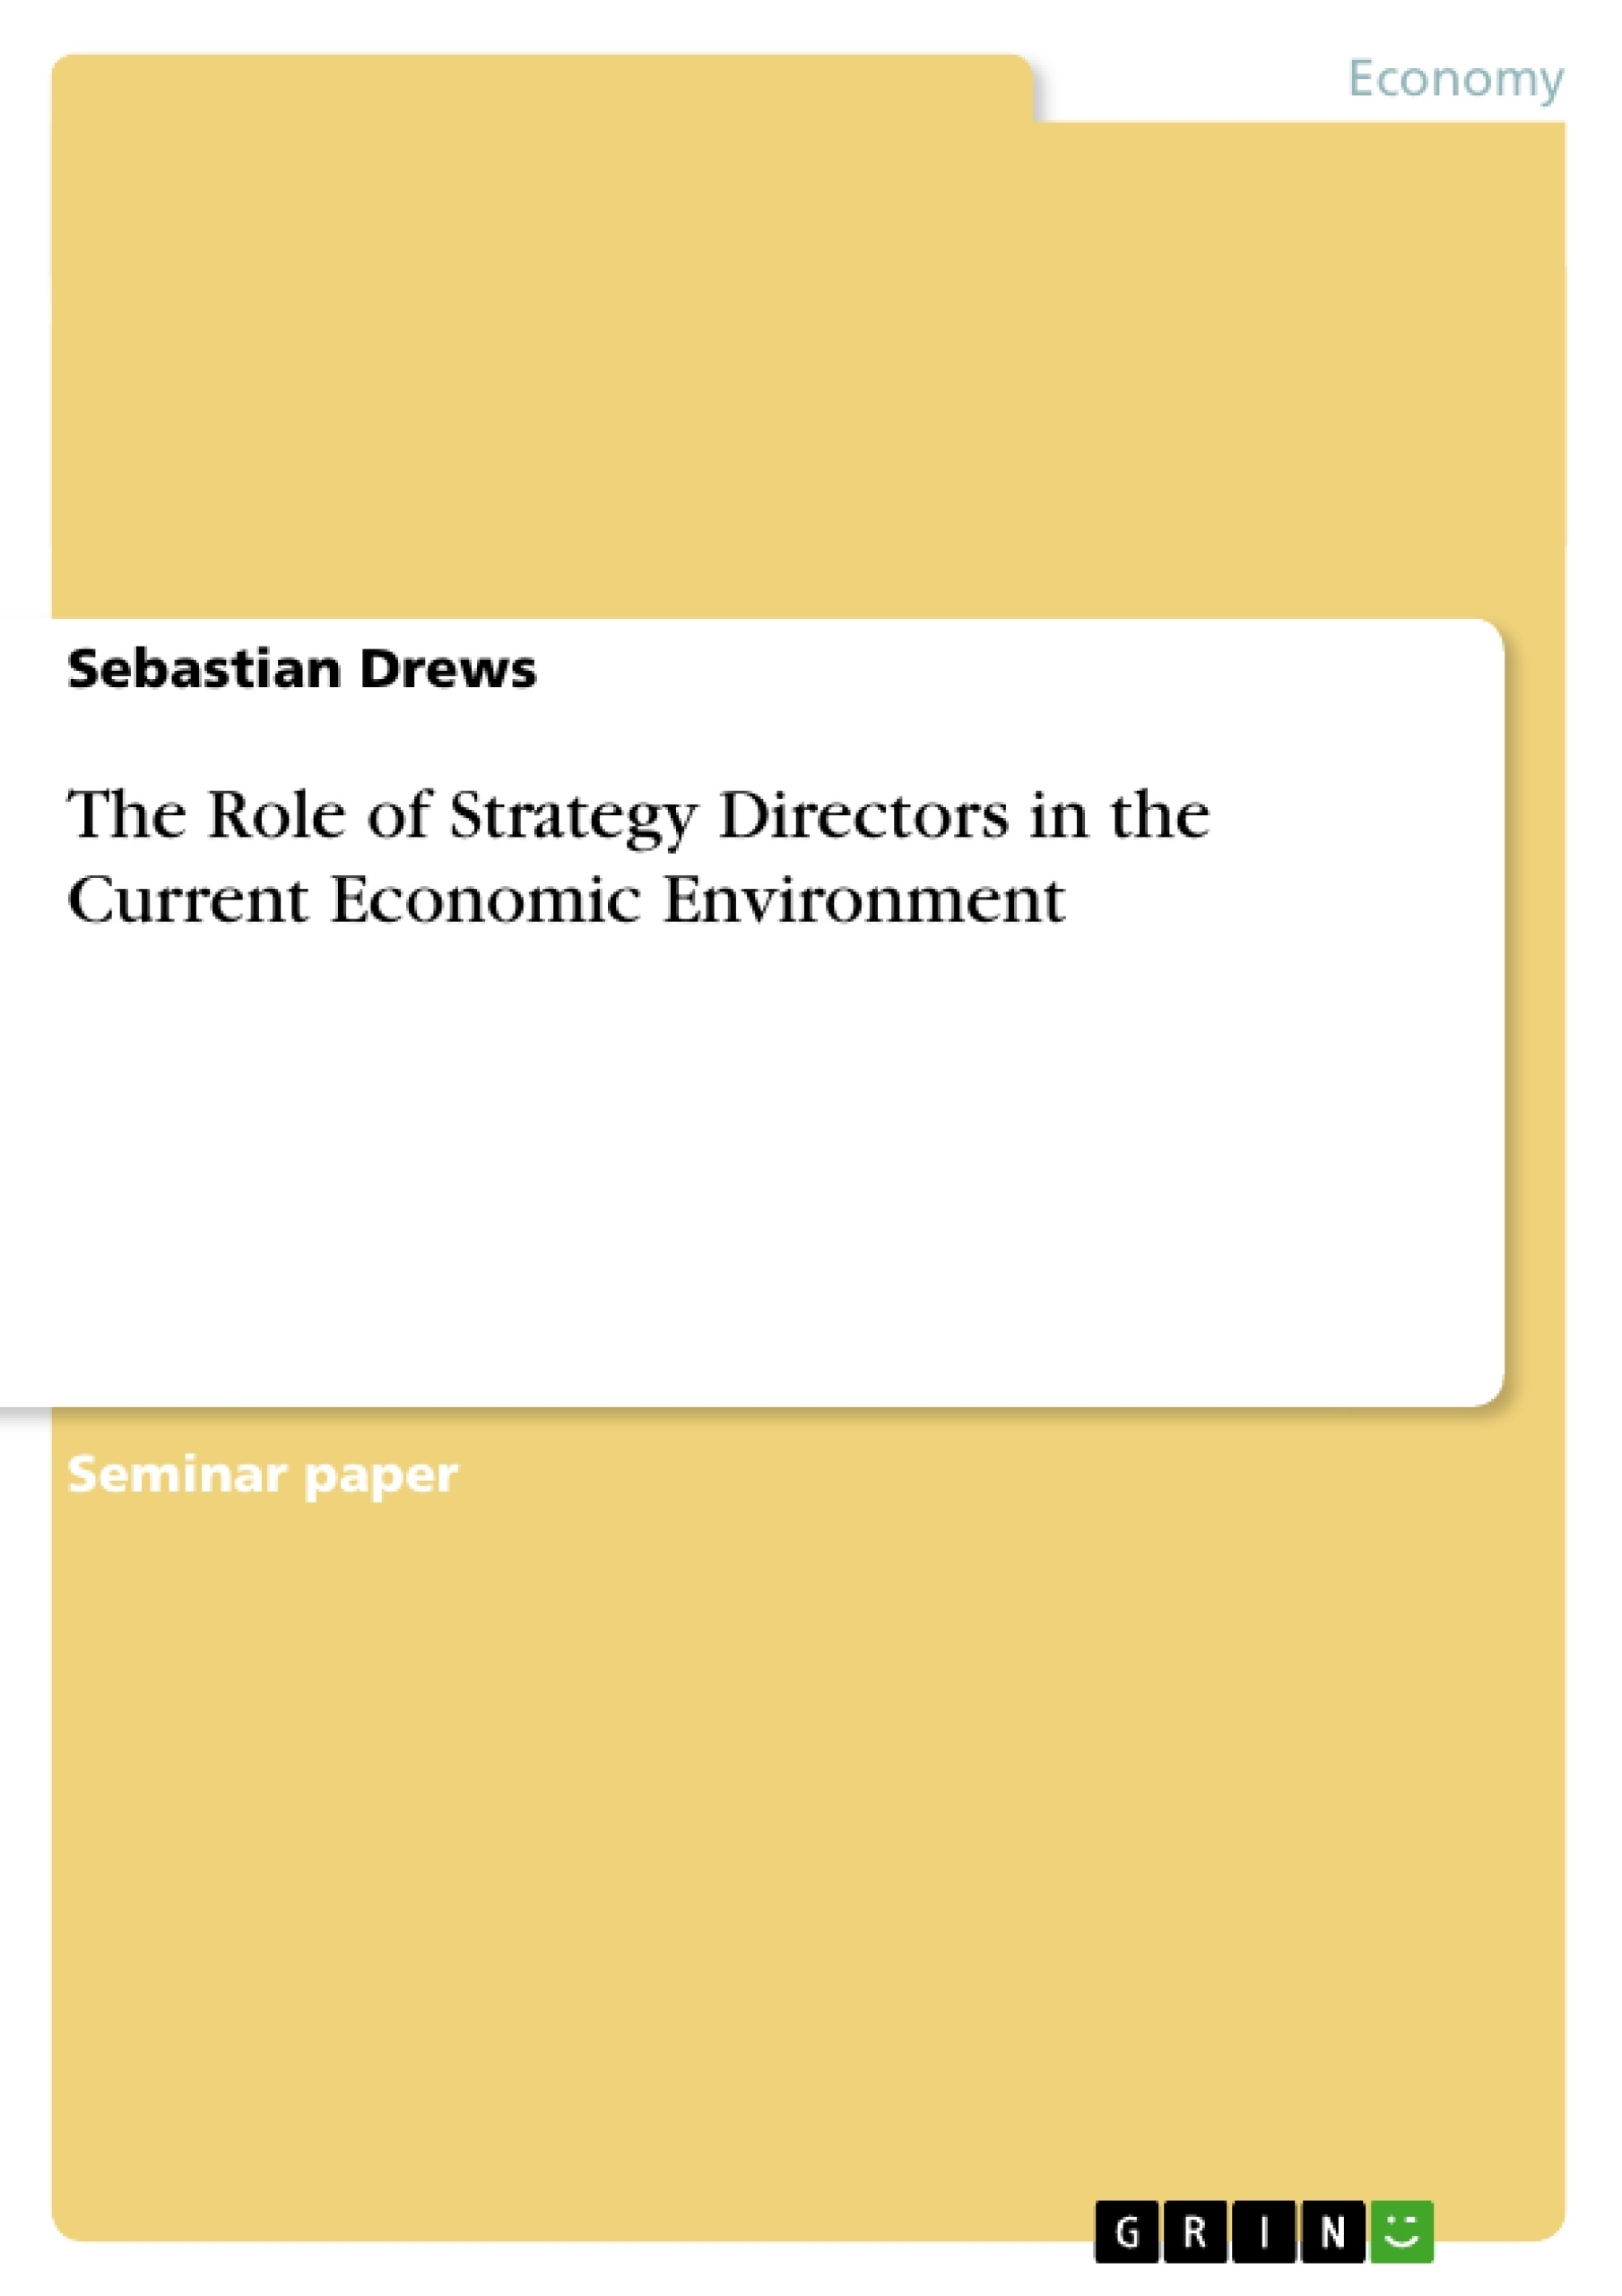 Title: The Role of Strategy Directors in the Current Economic Environment